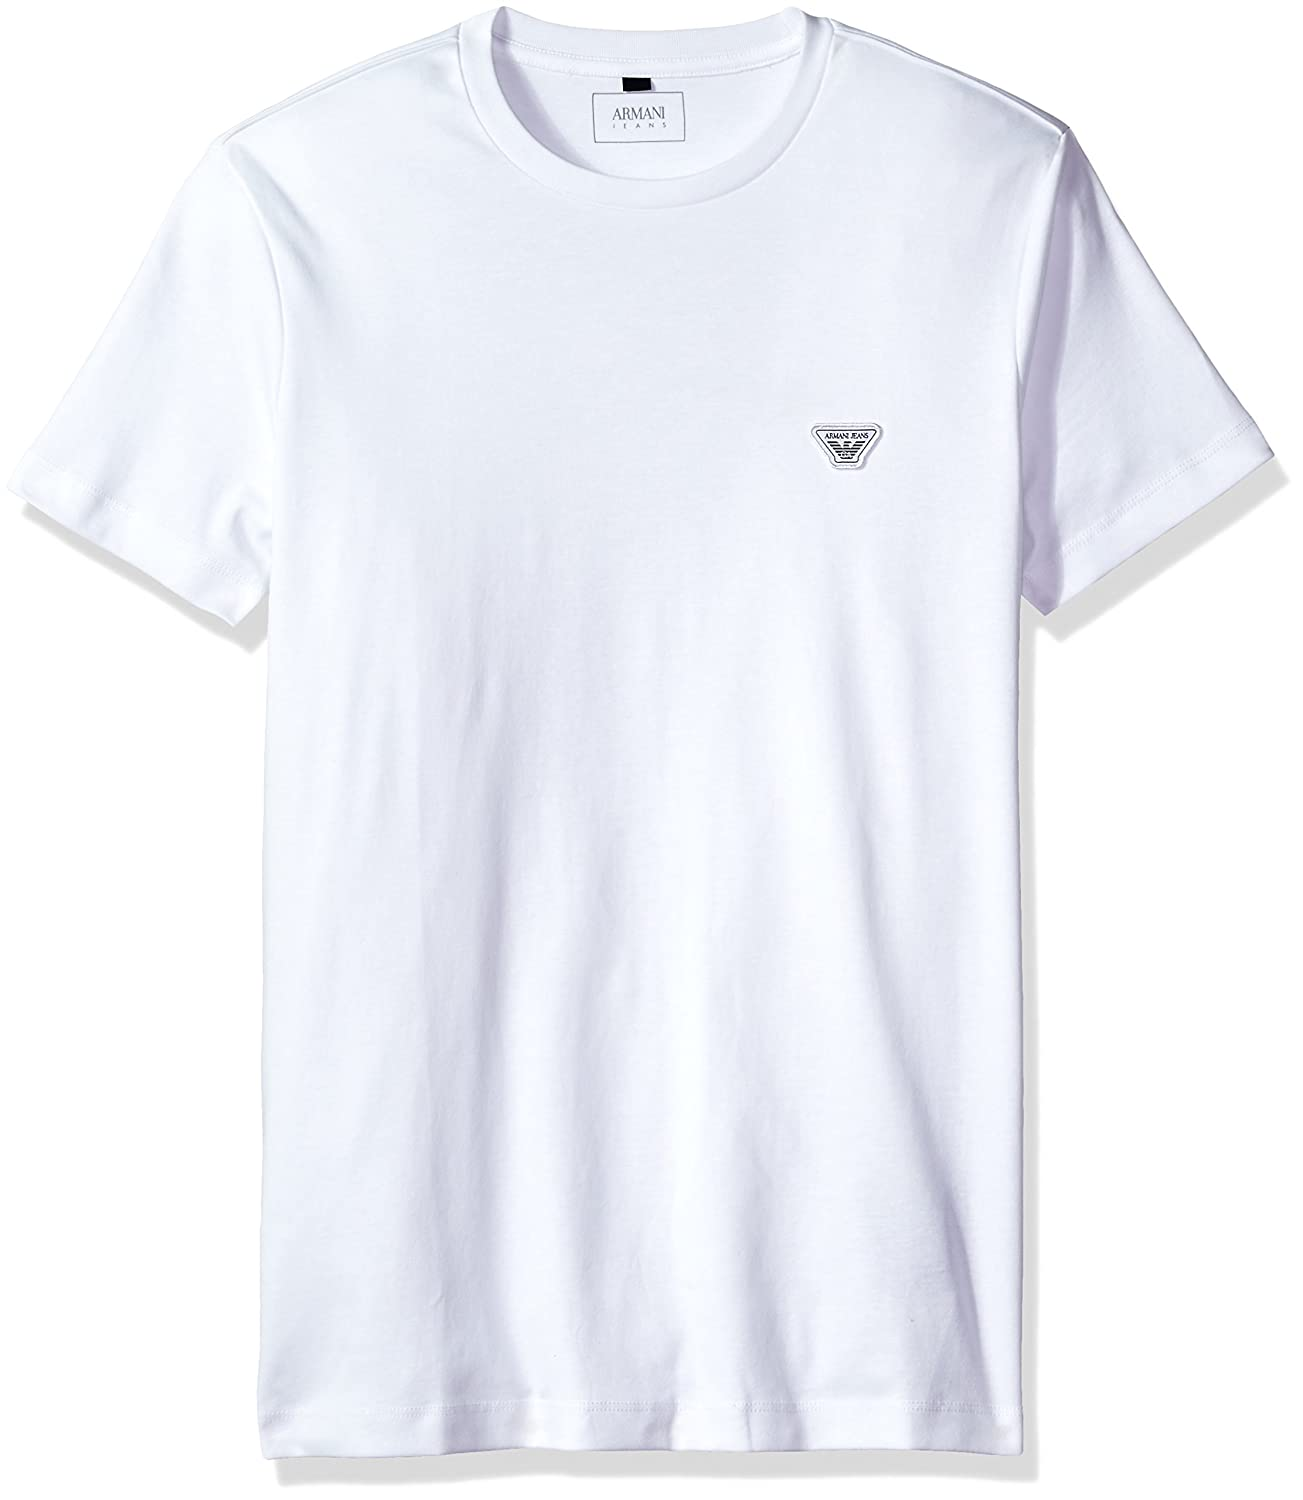 ee786c46 Amazon.com: ARMANI JEANS Men's Plus Size Cotton Jersey Small Eagle Logo  Tshirt: Clothing